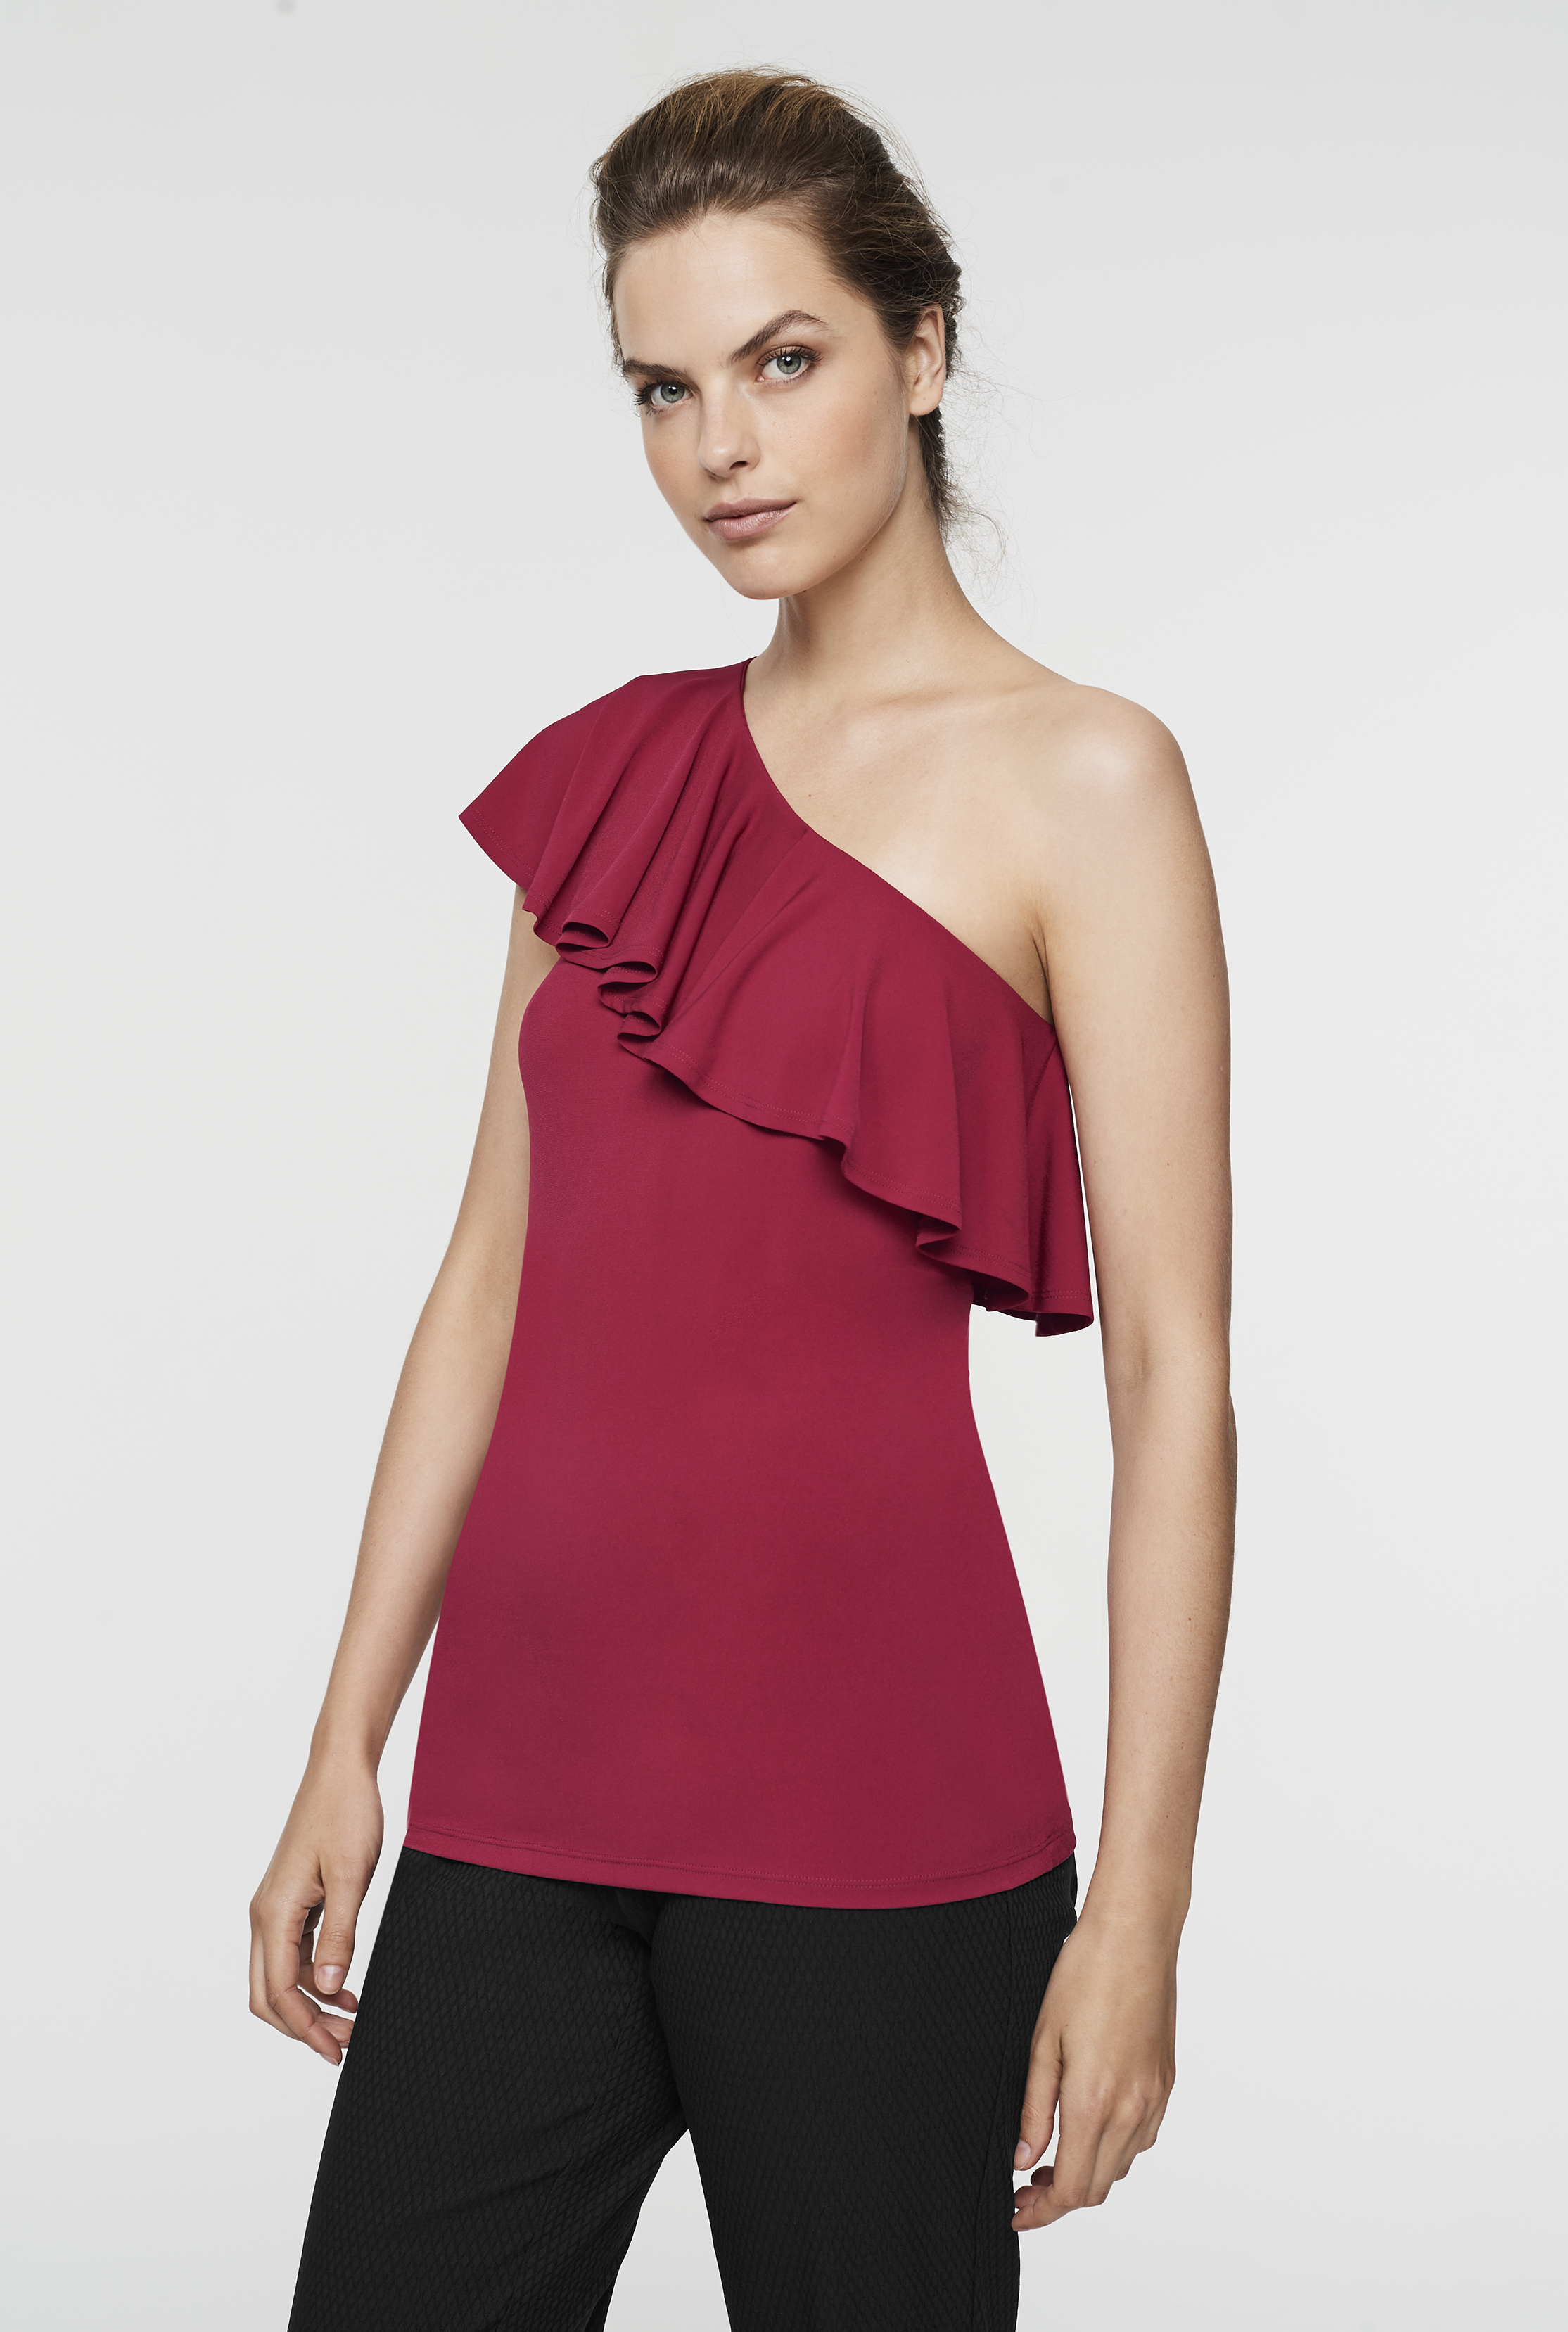 Red One Shoulder Frill Top